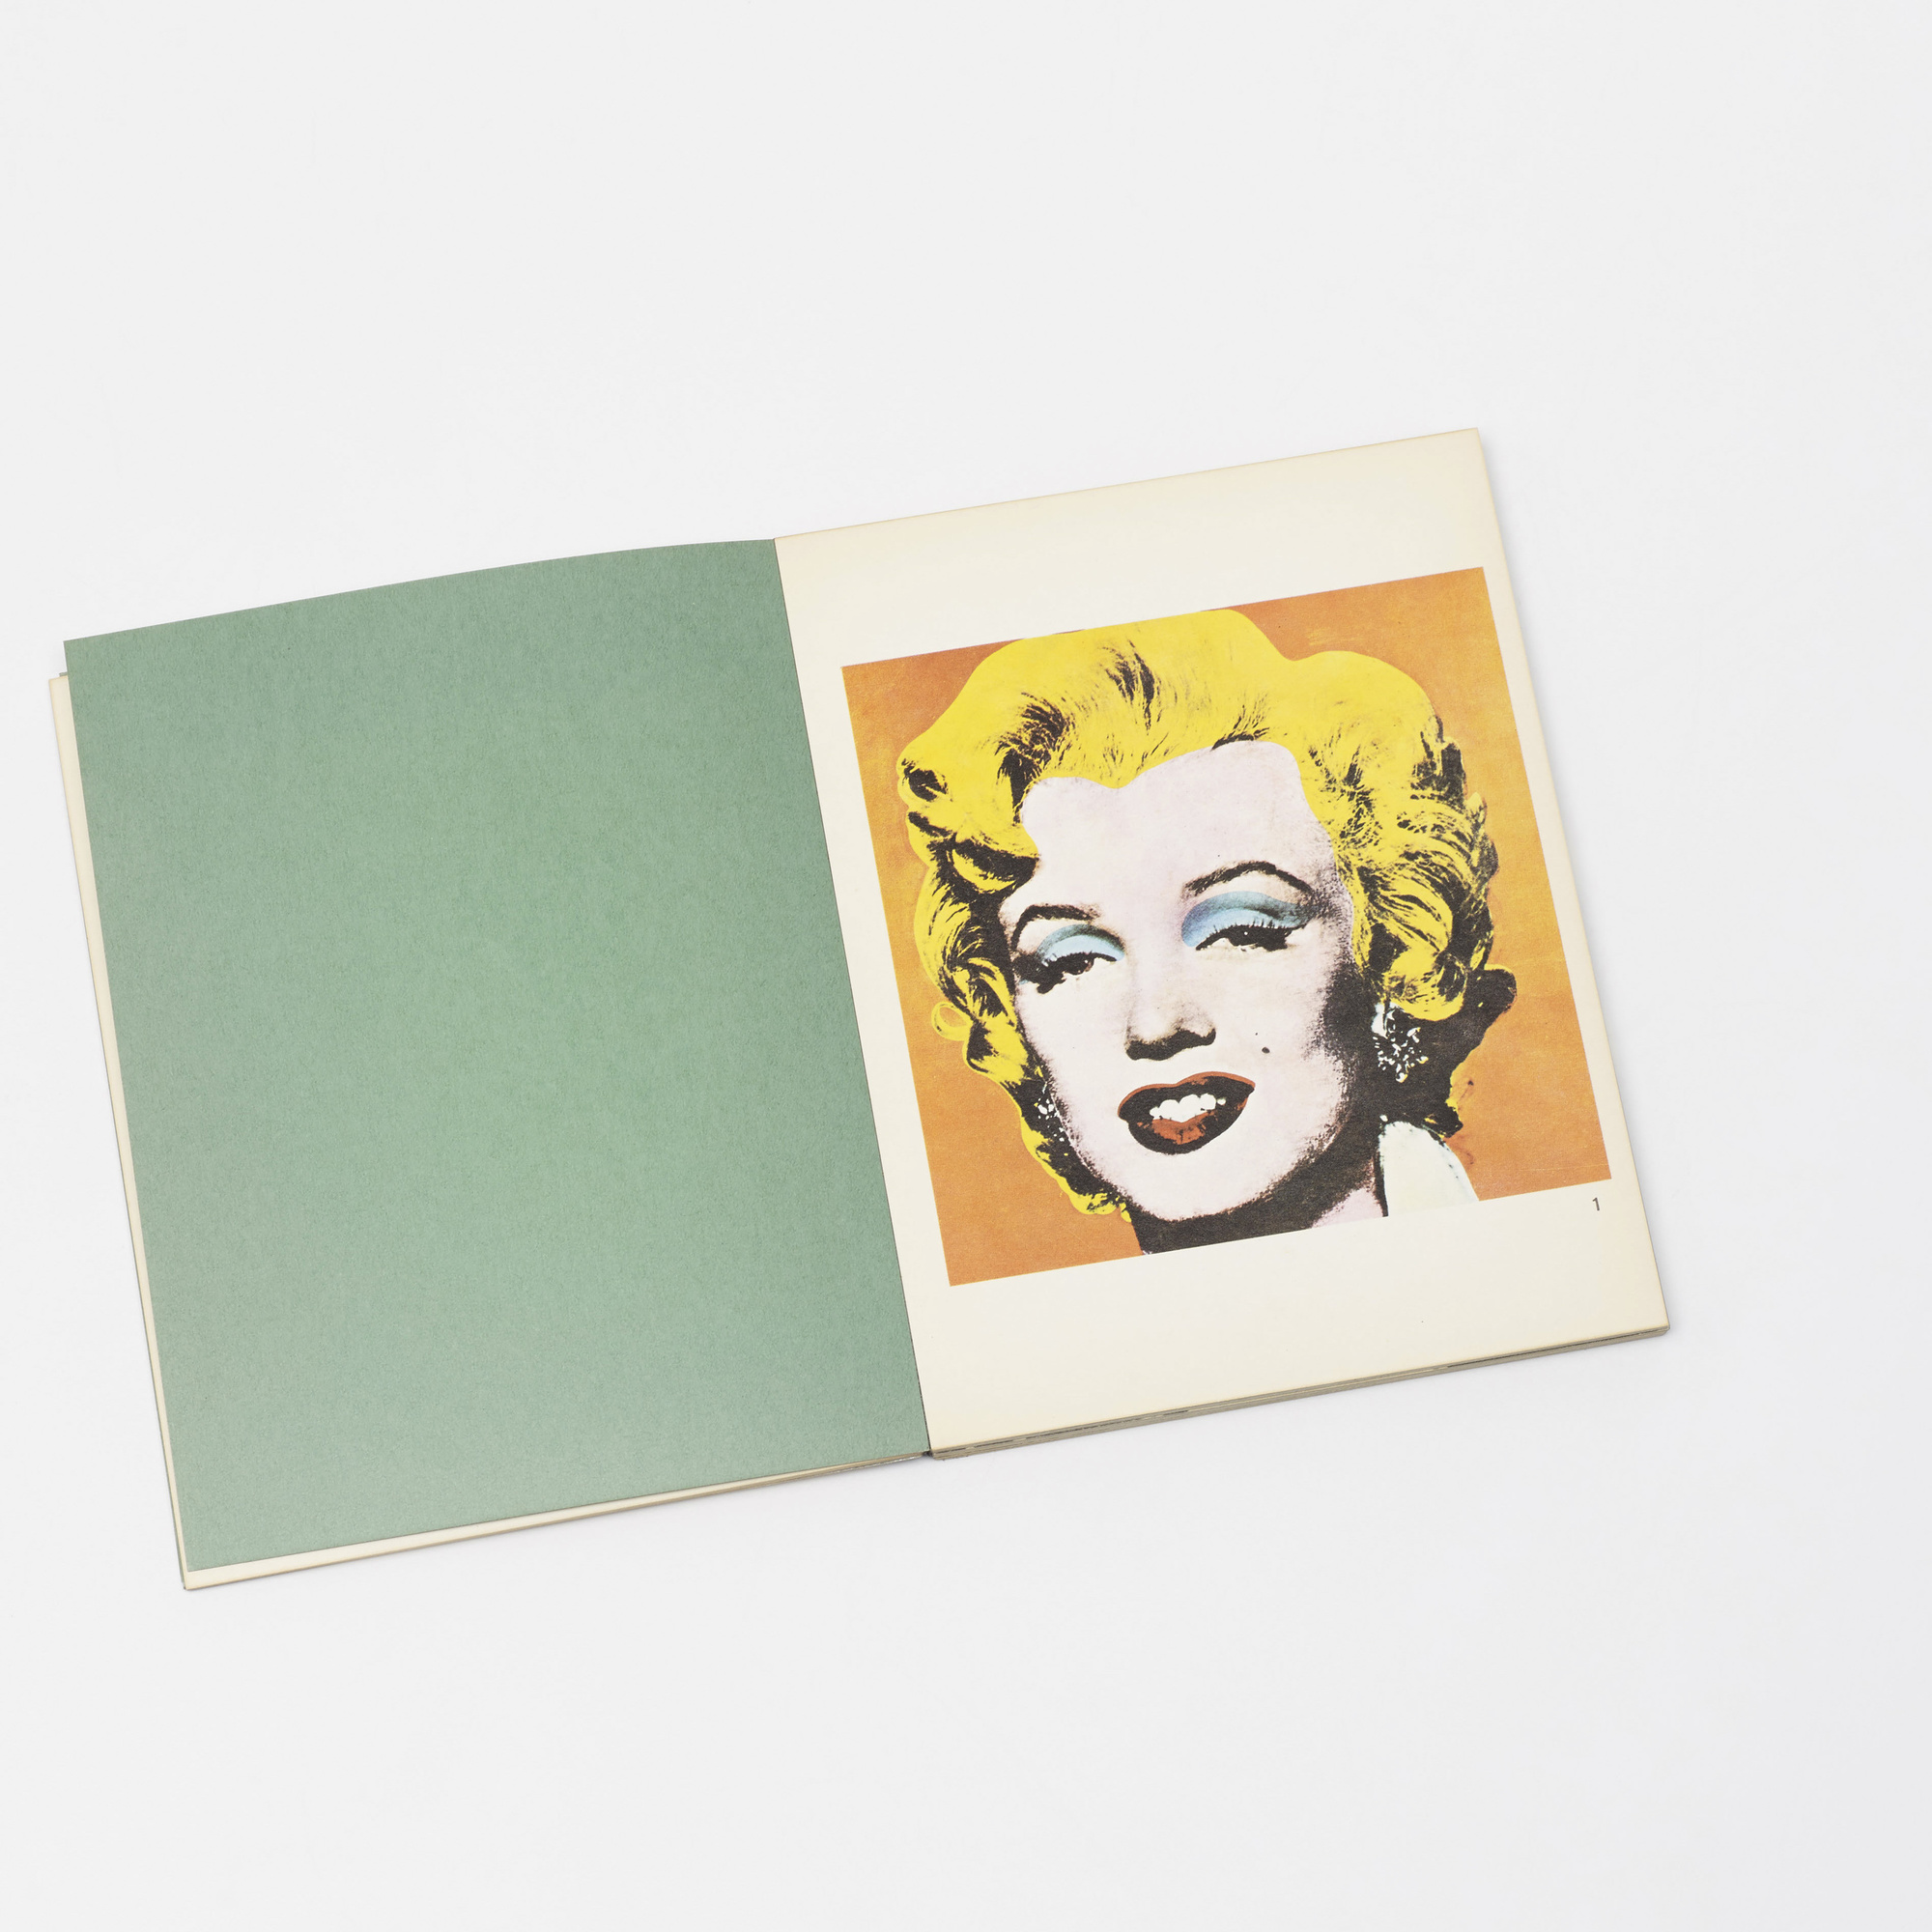 115: After Andy Warhol / exhibition catalog (4 of 4)